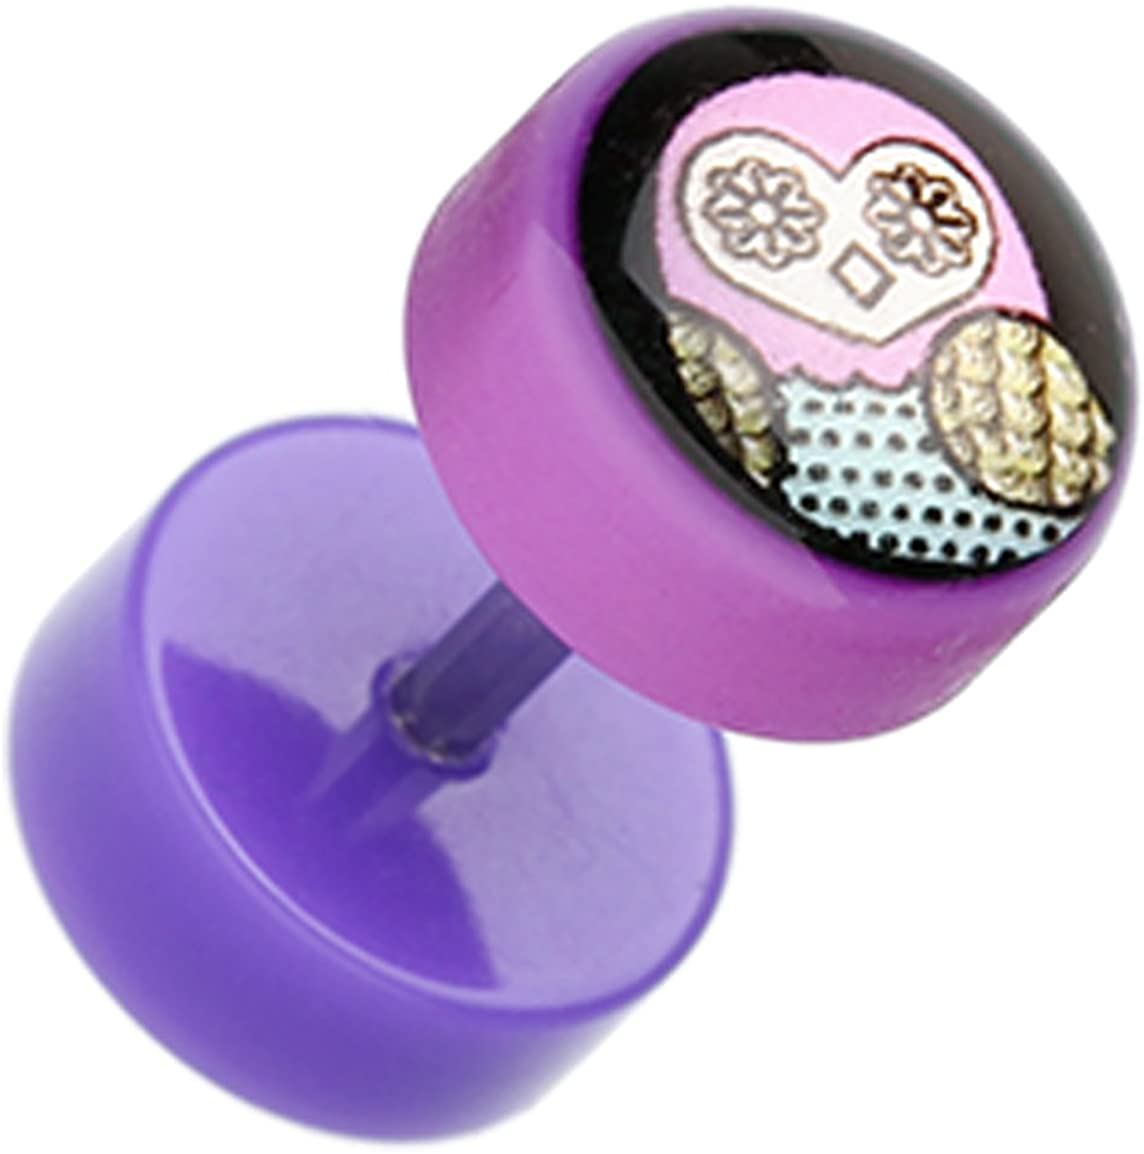 Sold as a Pair Patterned Owl Acrylic Fake Plug